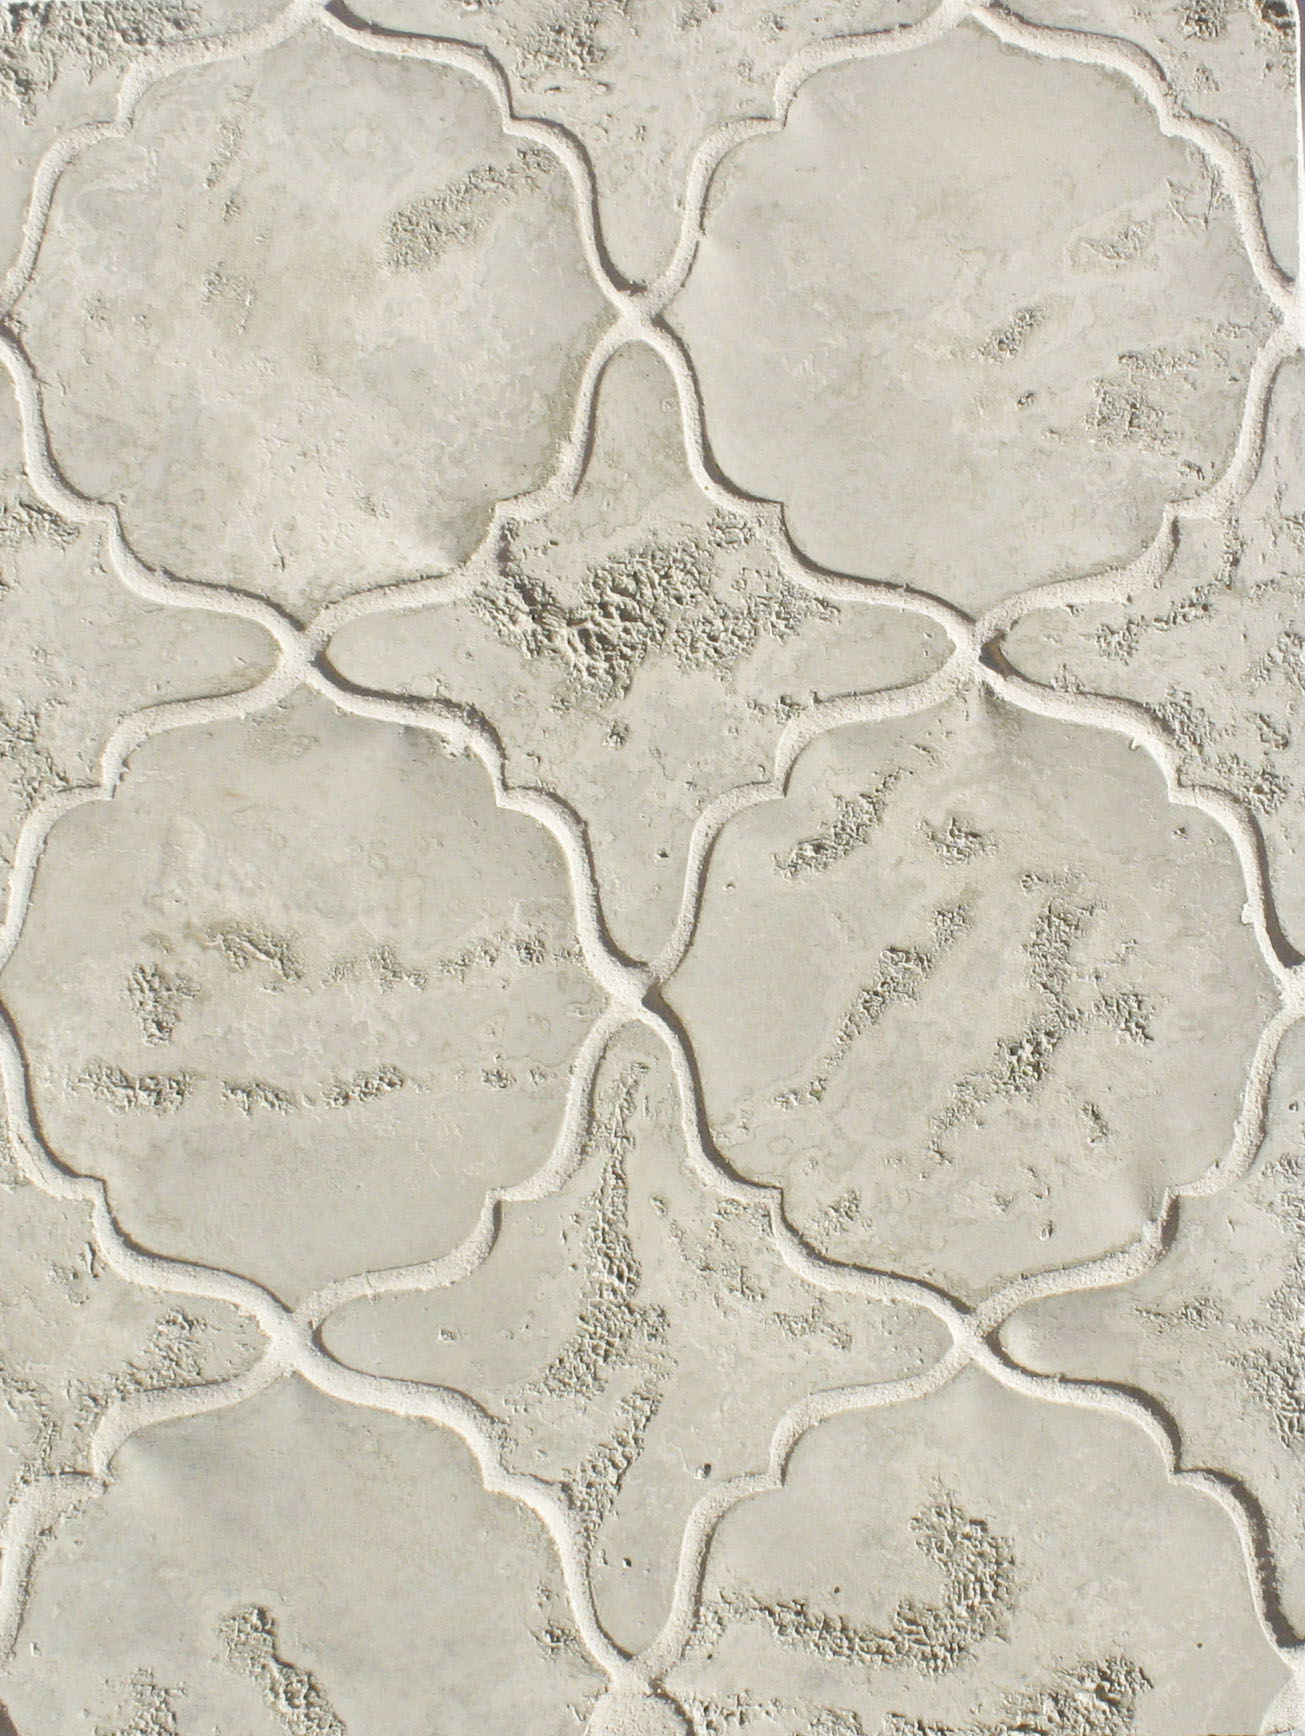 BB221 Arabesque Pattern 13- Early Gray Limestone